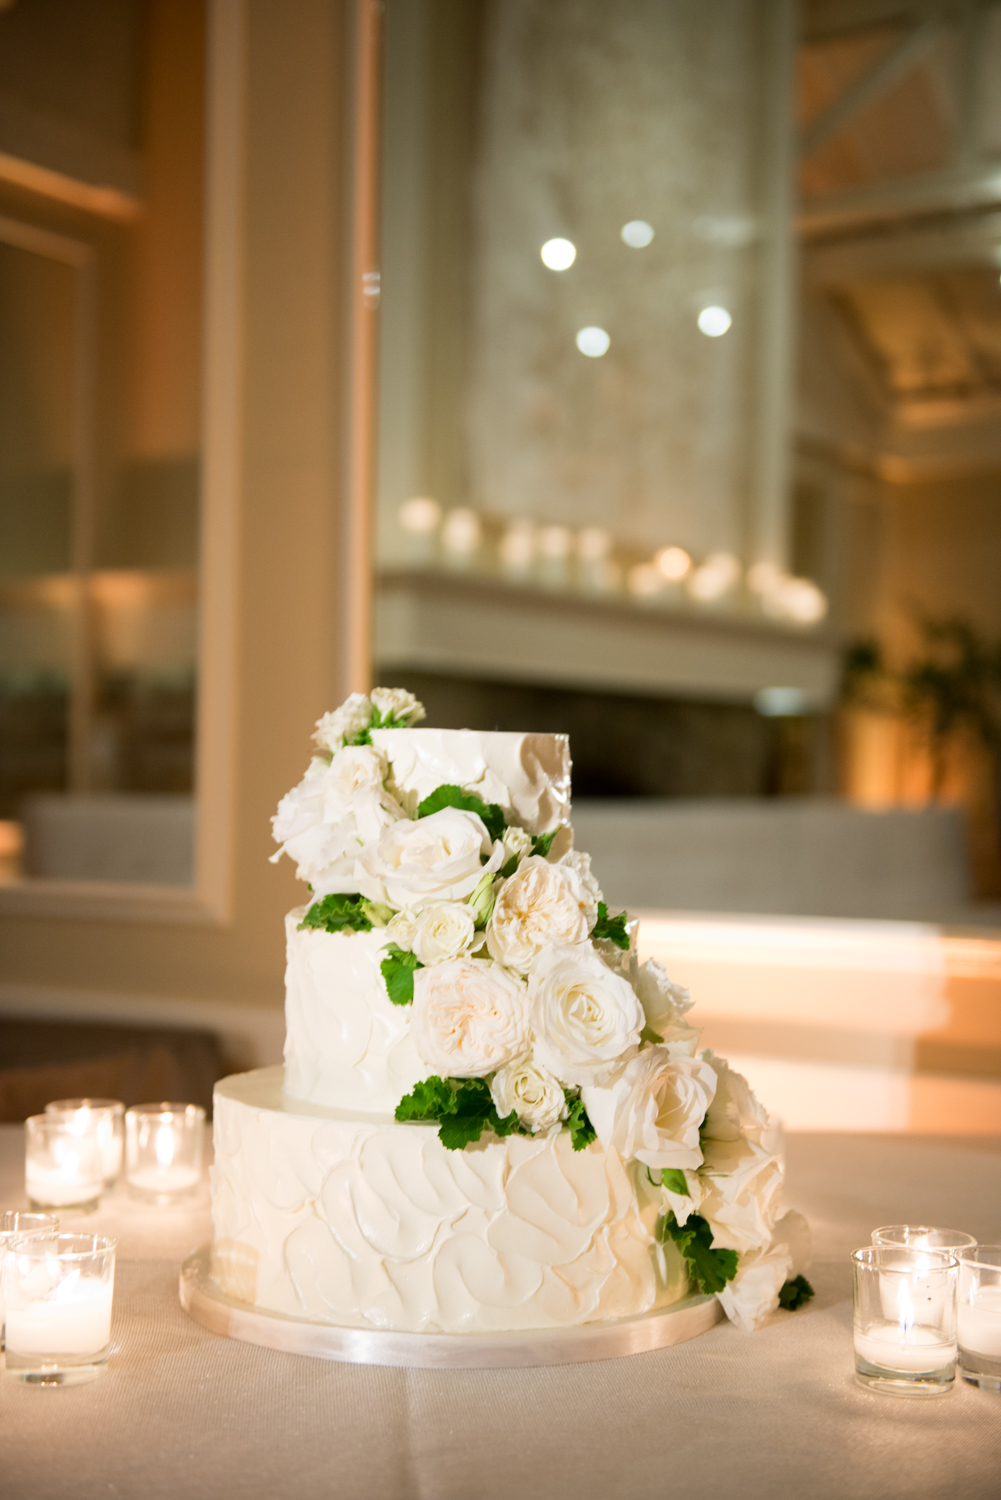 A three layer wedding cake surrounded by votive candles and draped with elegant white florals; photo by Sylvie Gil